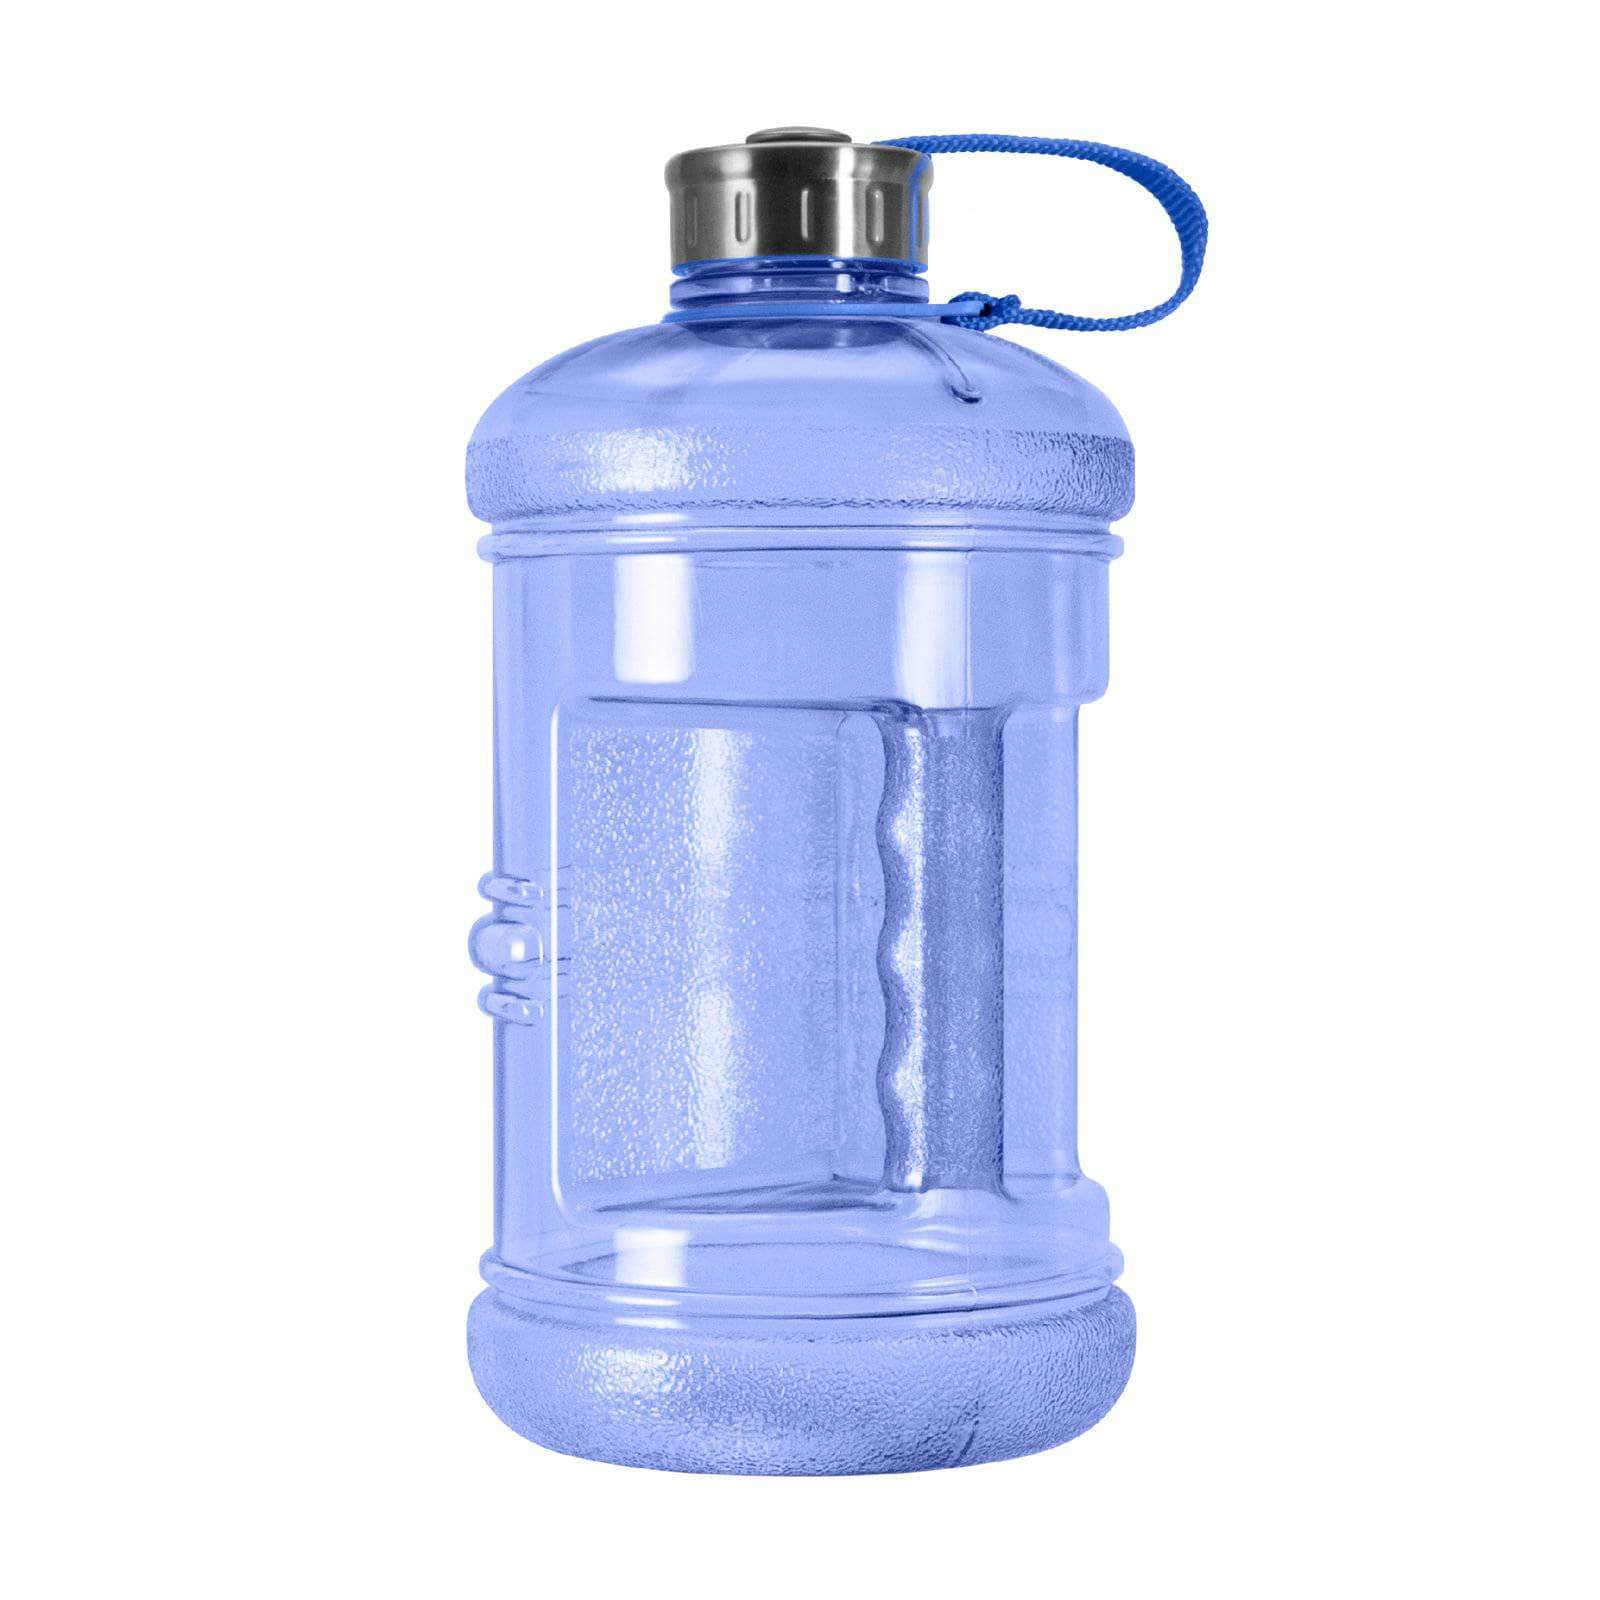 Geo Bottles Bottles Dark Blue 2.3 Litter BPA FREE Bottle w/ Stainless Steel Cap